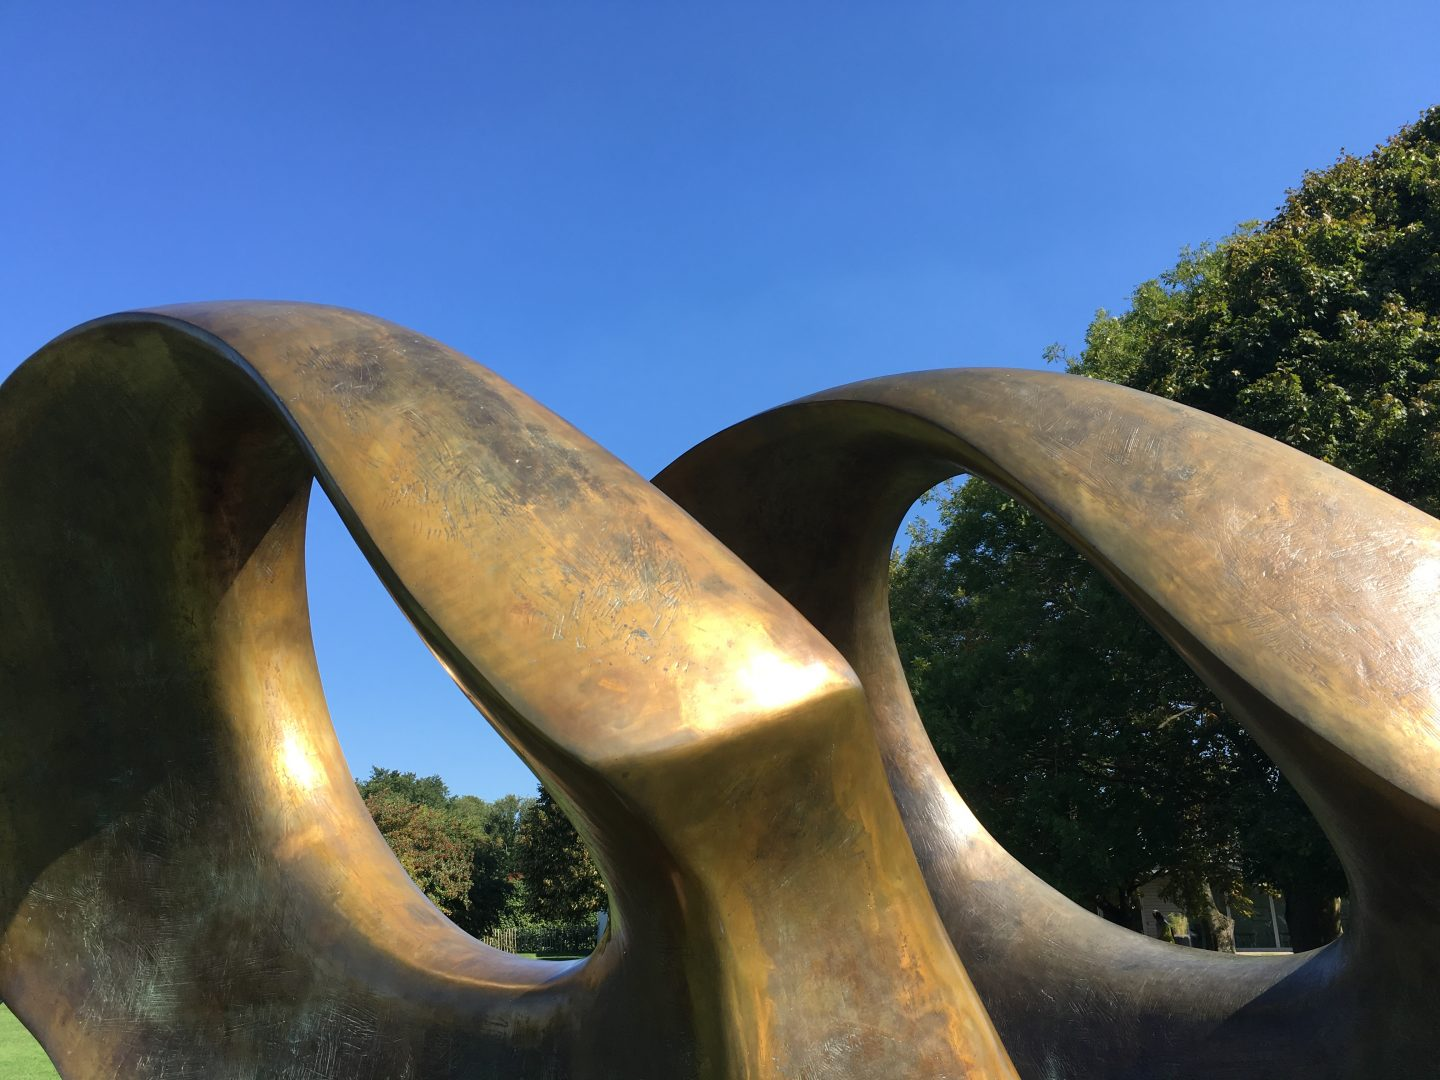 A family visit to the Henry Moore Studios and Gardens in Hertfordshire